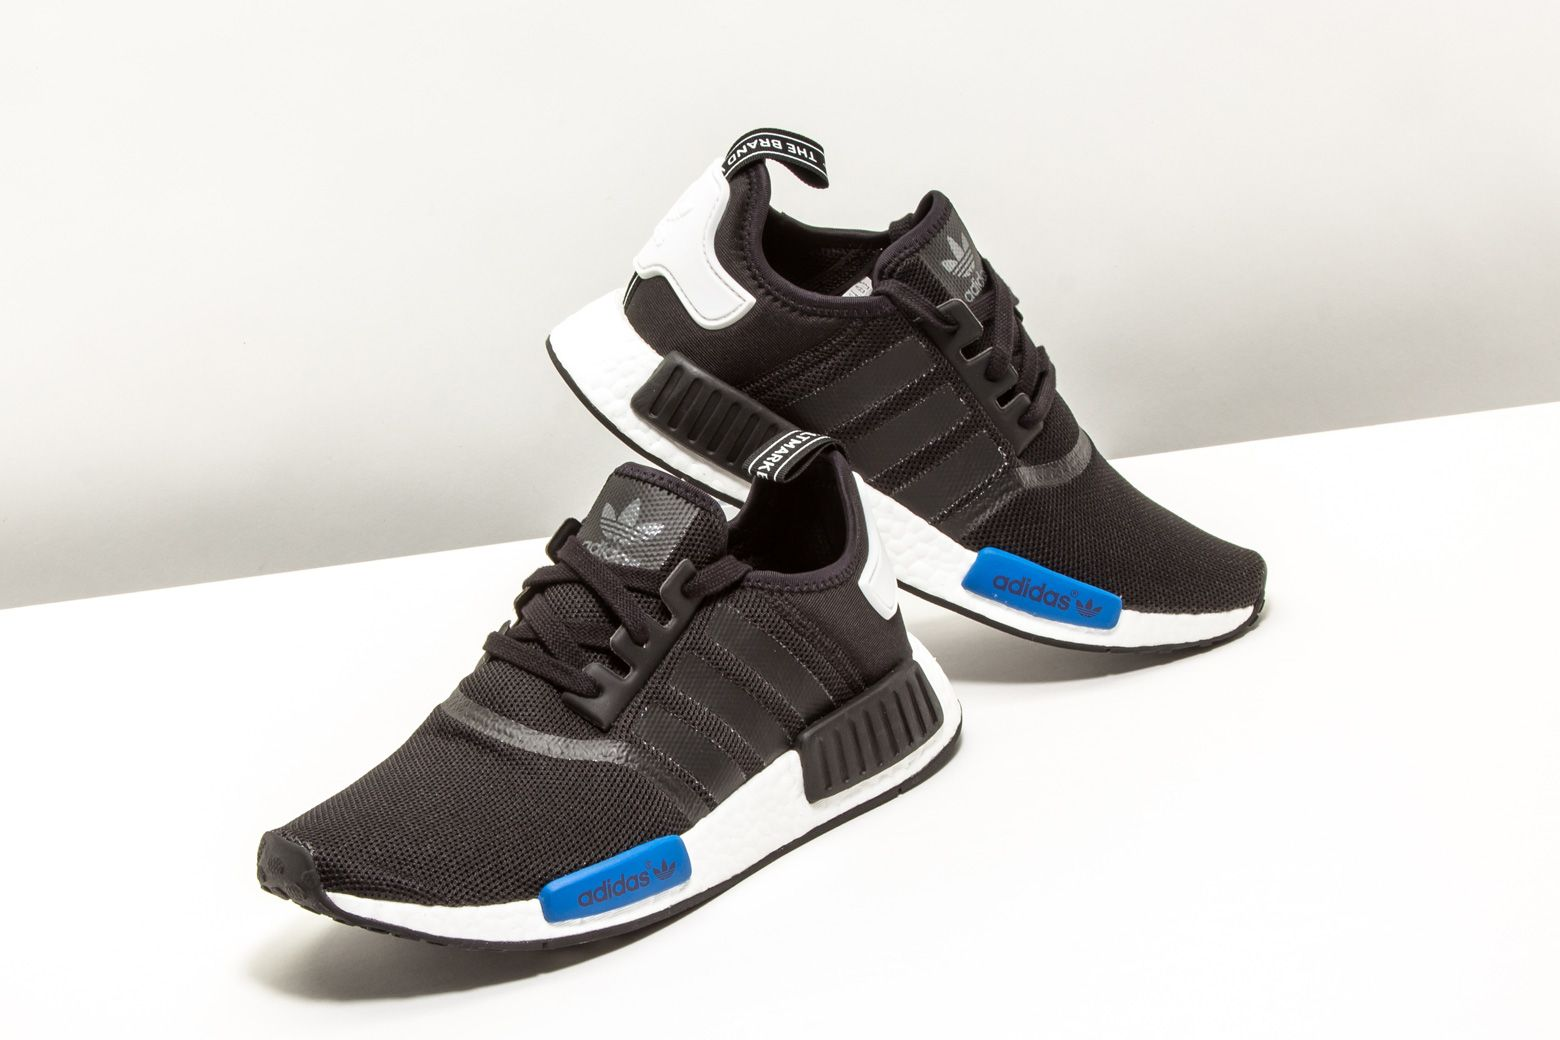 7a5fb8377 adidas outfitted this classic NMD R1 in a Core Black colorway with blue and  white accents.